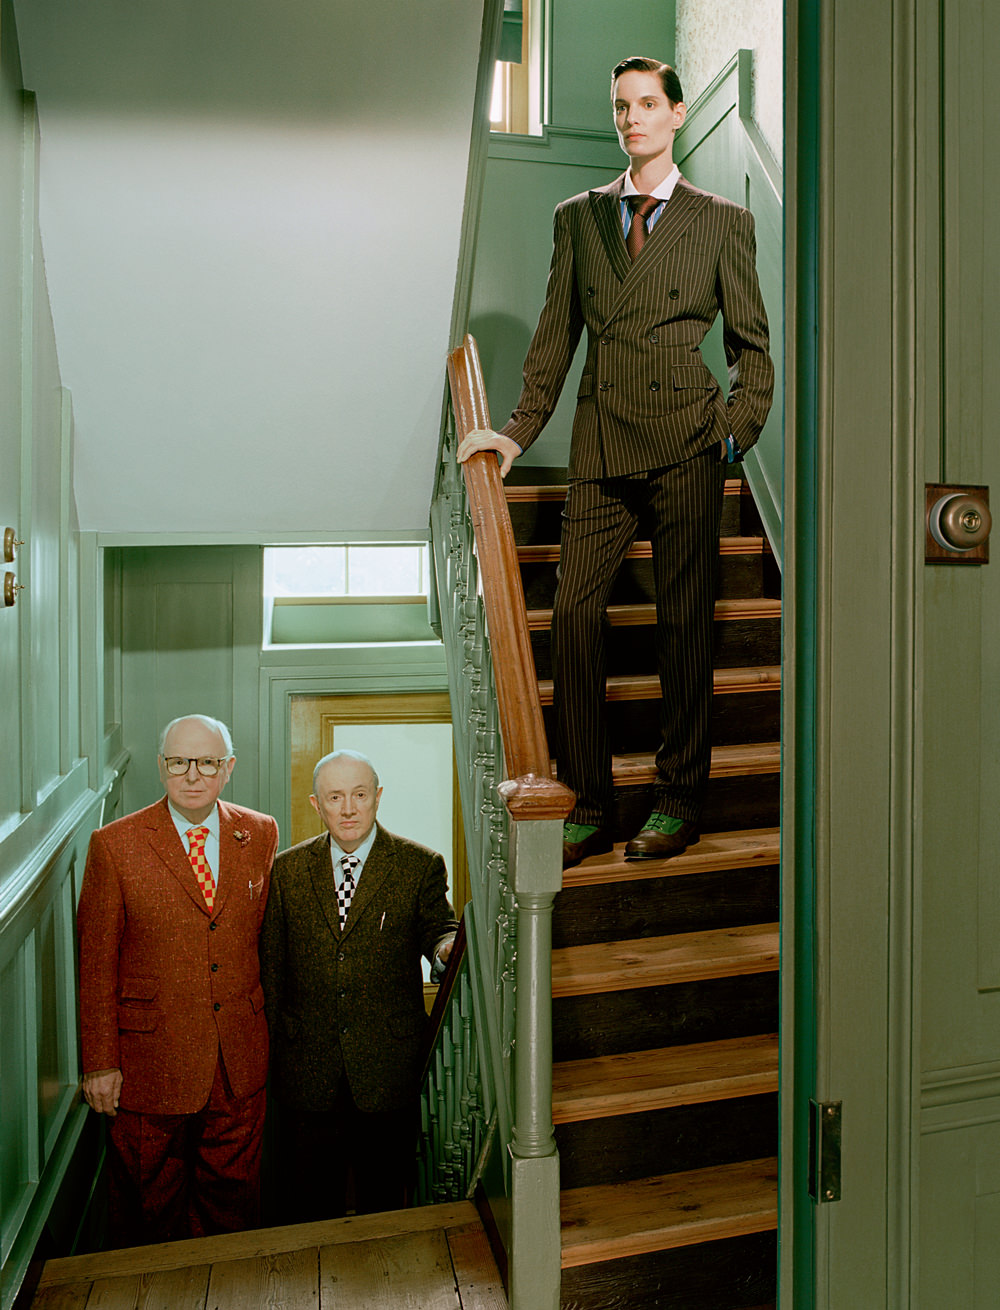 Artists Gilbert & George teamed up with photographer Miles Aldridge